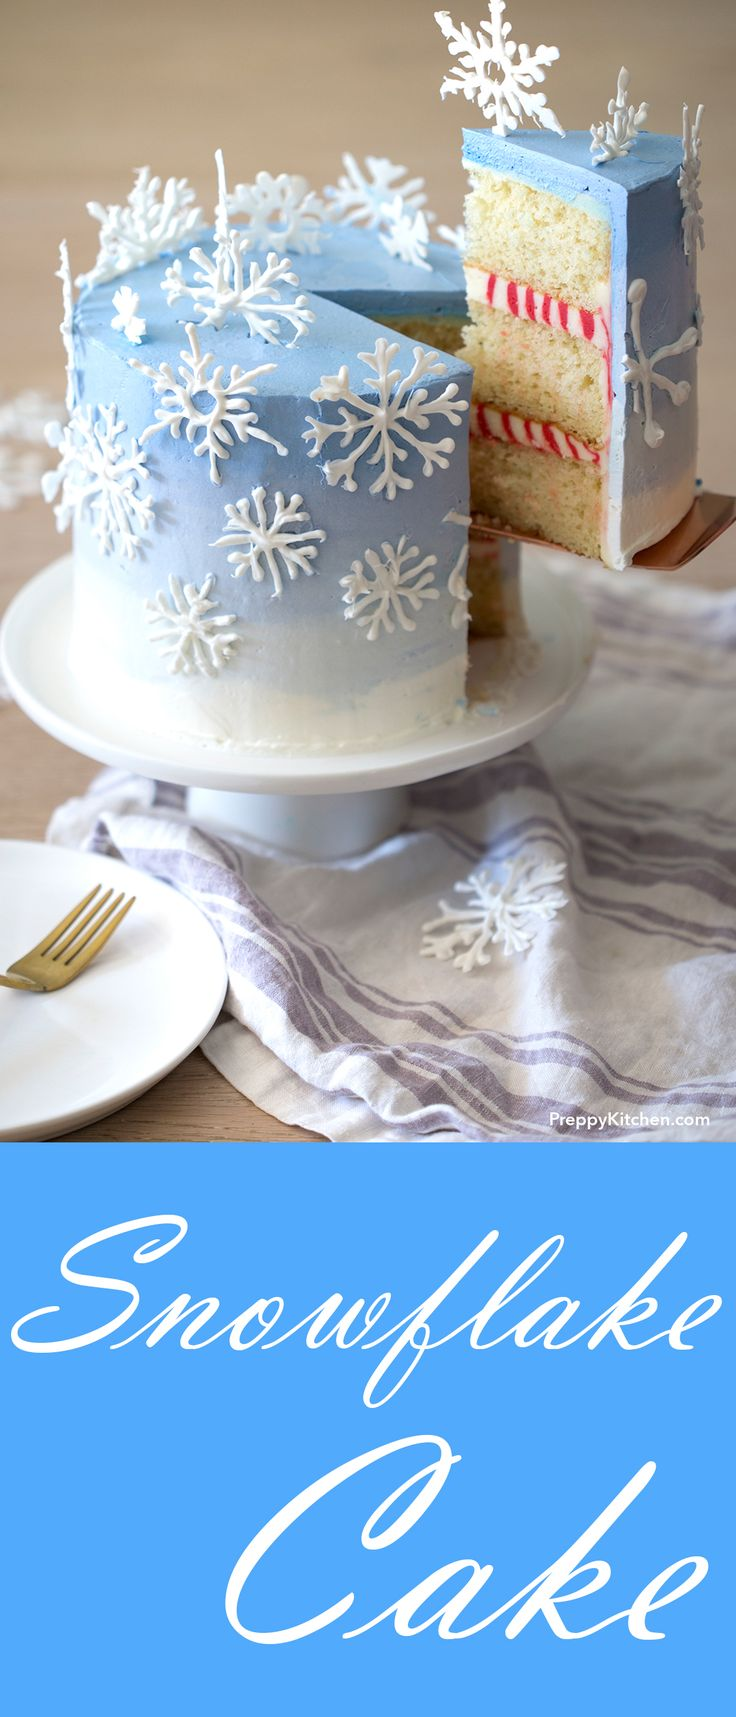 This gorgeous snowflake cake has a peppermint cream filling, and it's sooooo cute!! I love it!